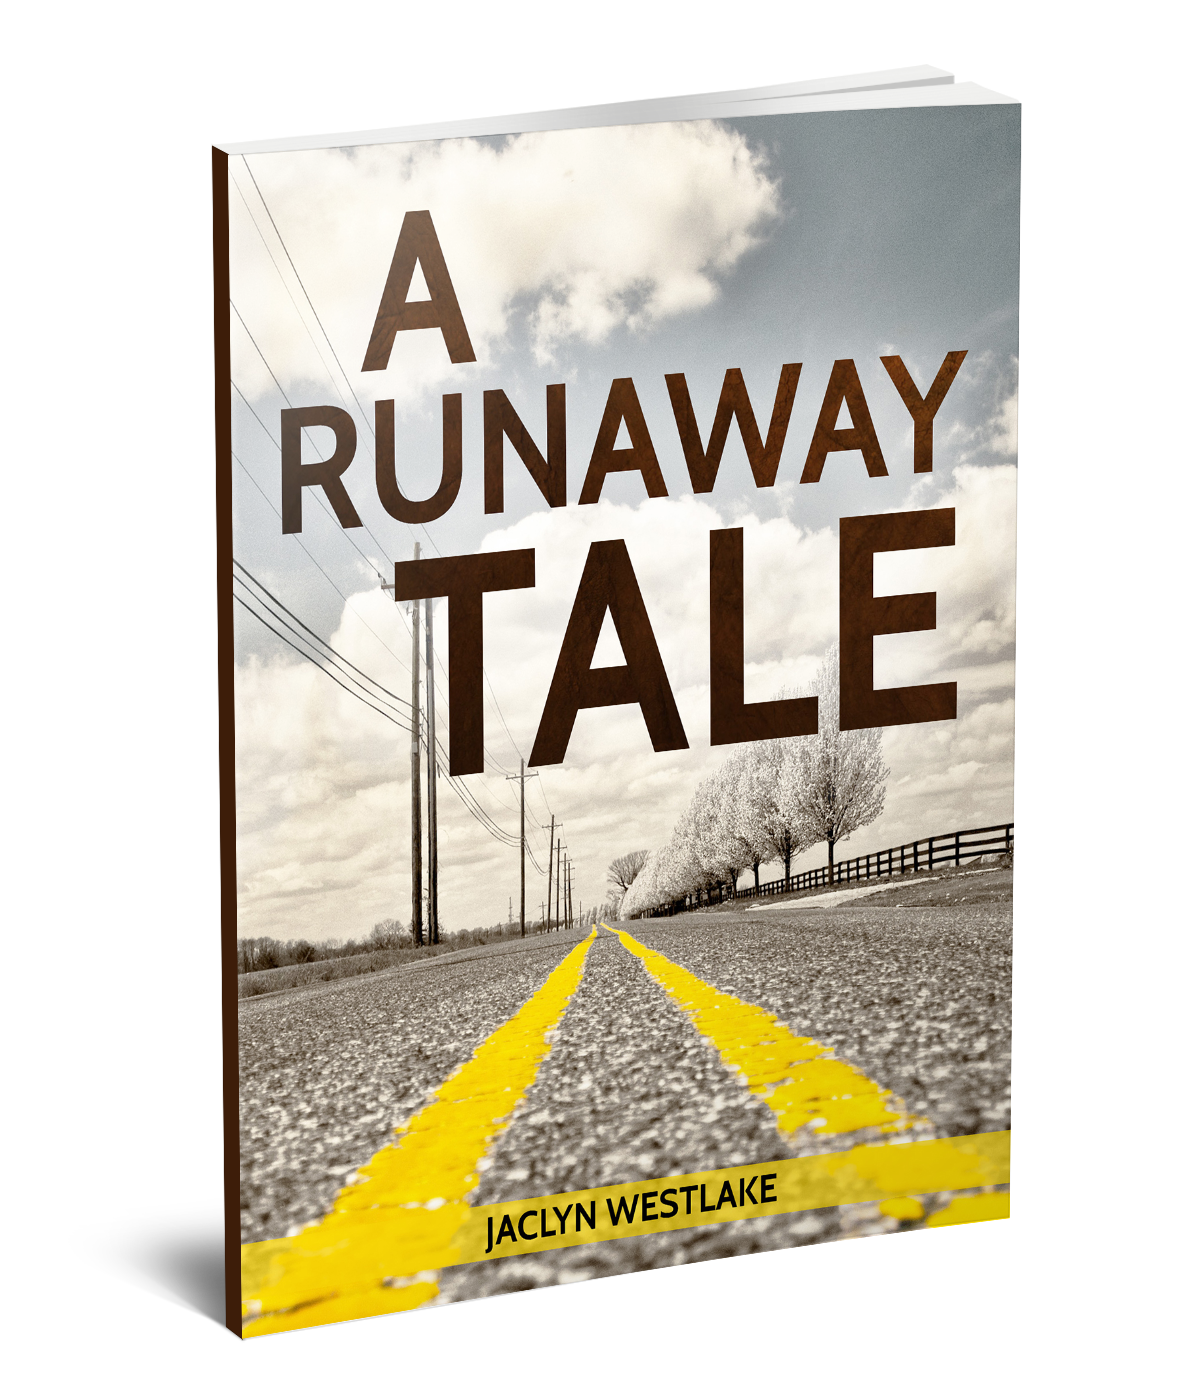 Character-Based Award - A RUNAWAY TALE by  Jaclyn WestlakeAll Zigg knows is a life of captivity and cruelty. When he finally escapes, he wonders whether he'll ever live a life outside the cage.